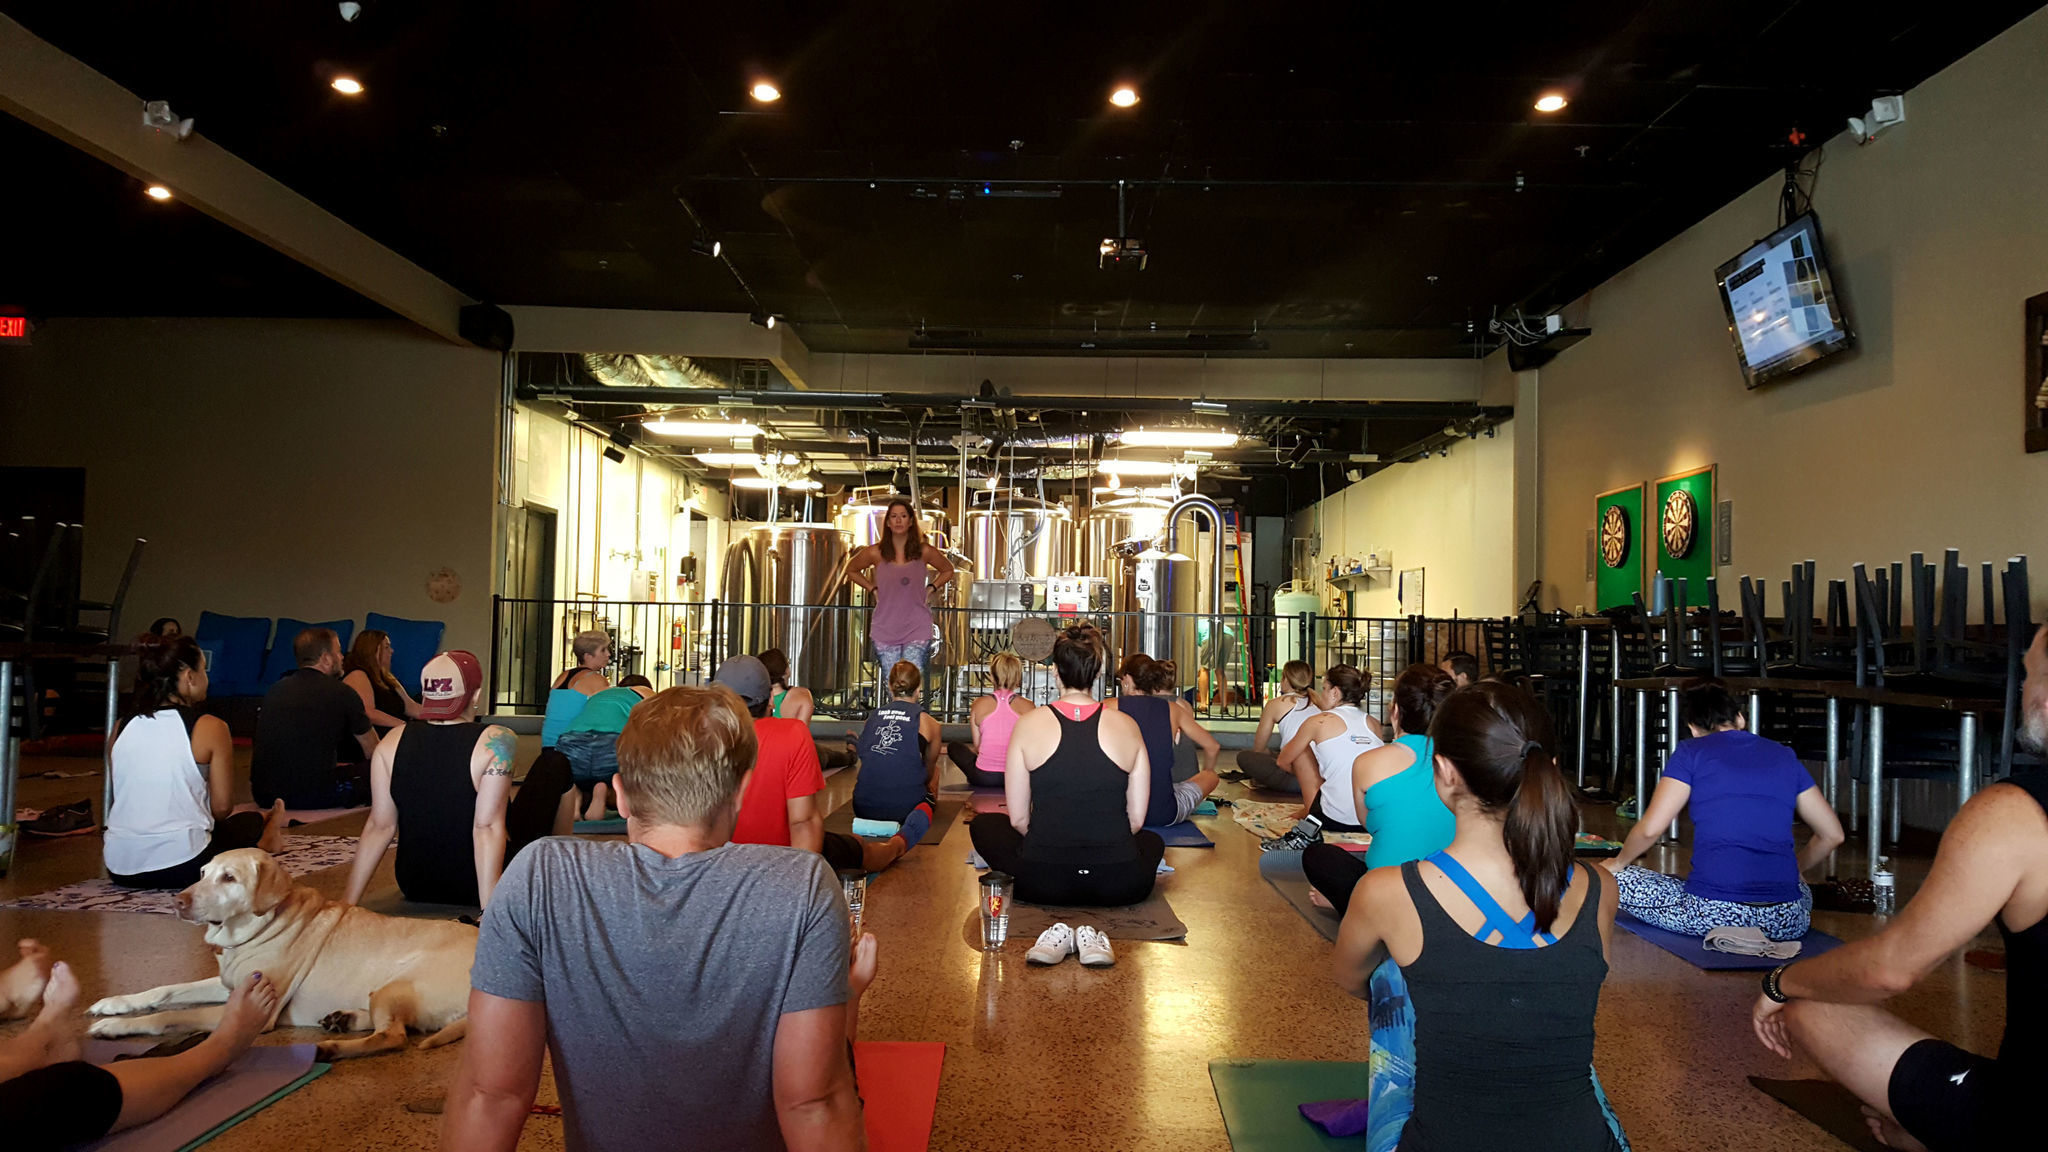 Perfect Pairing Yoga And Breweries Team Up To Attract